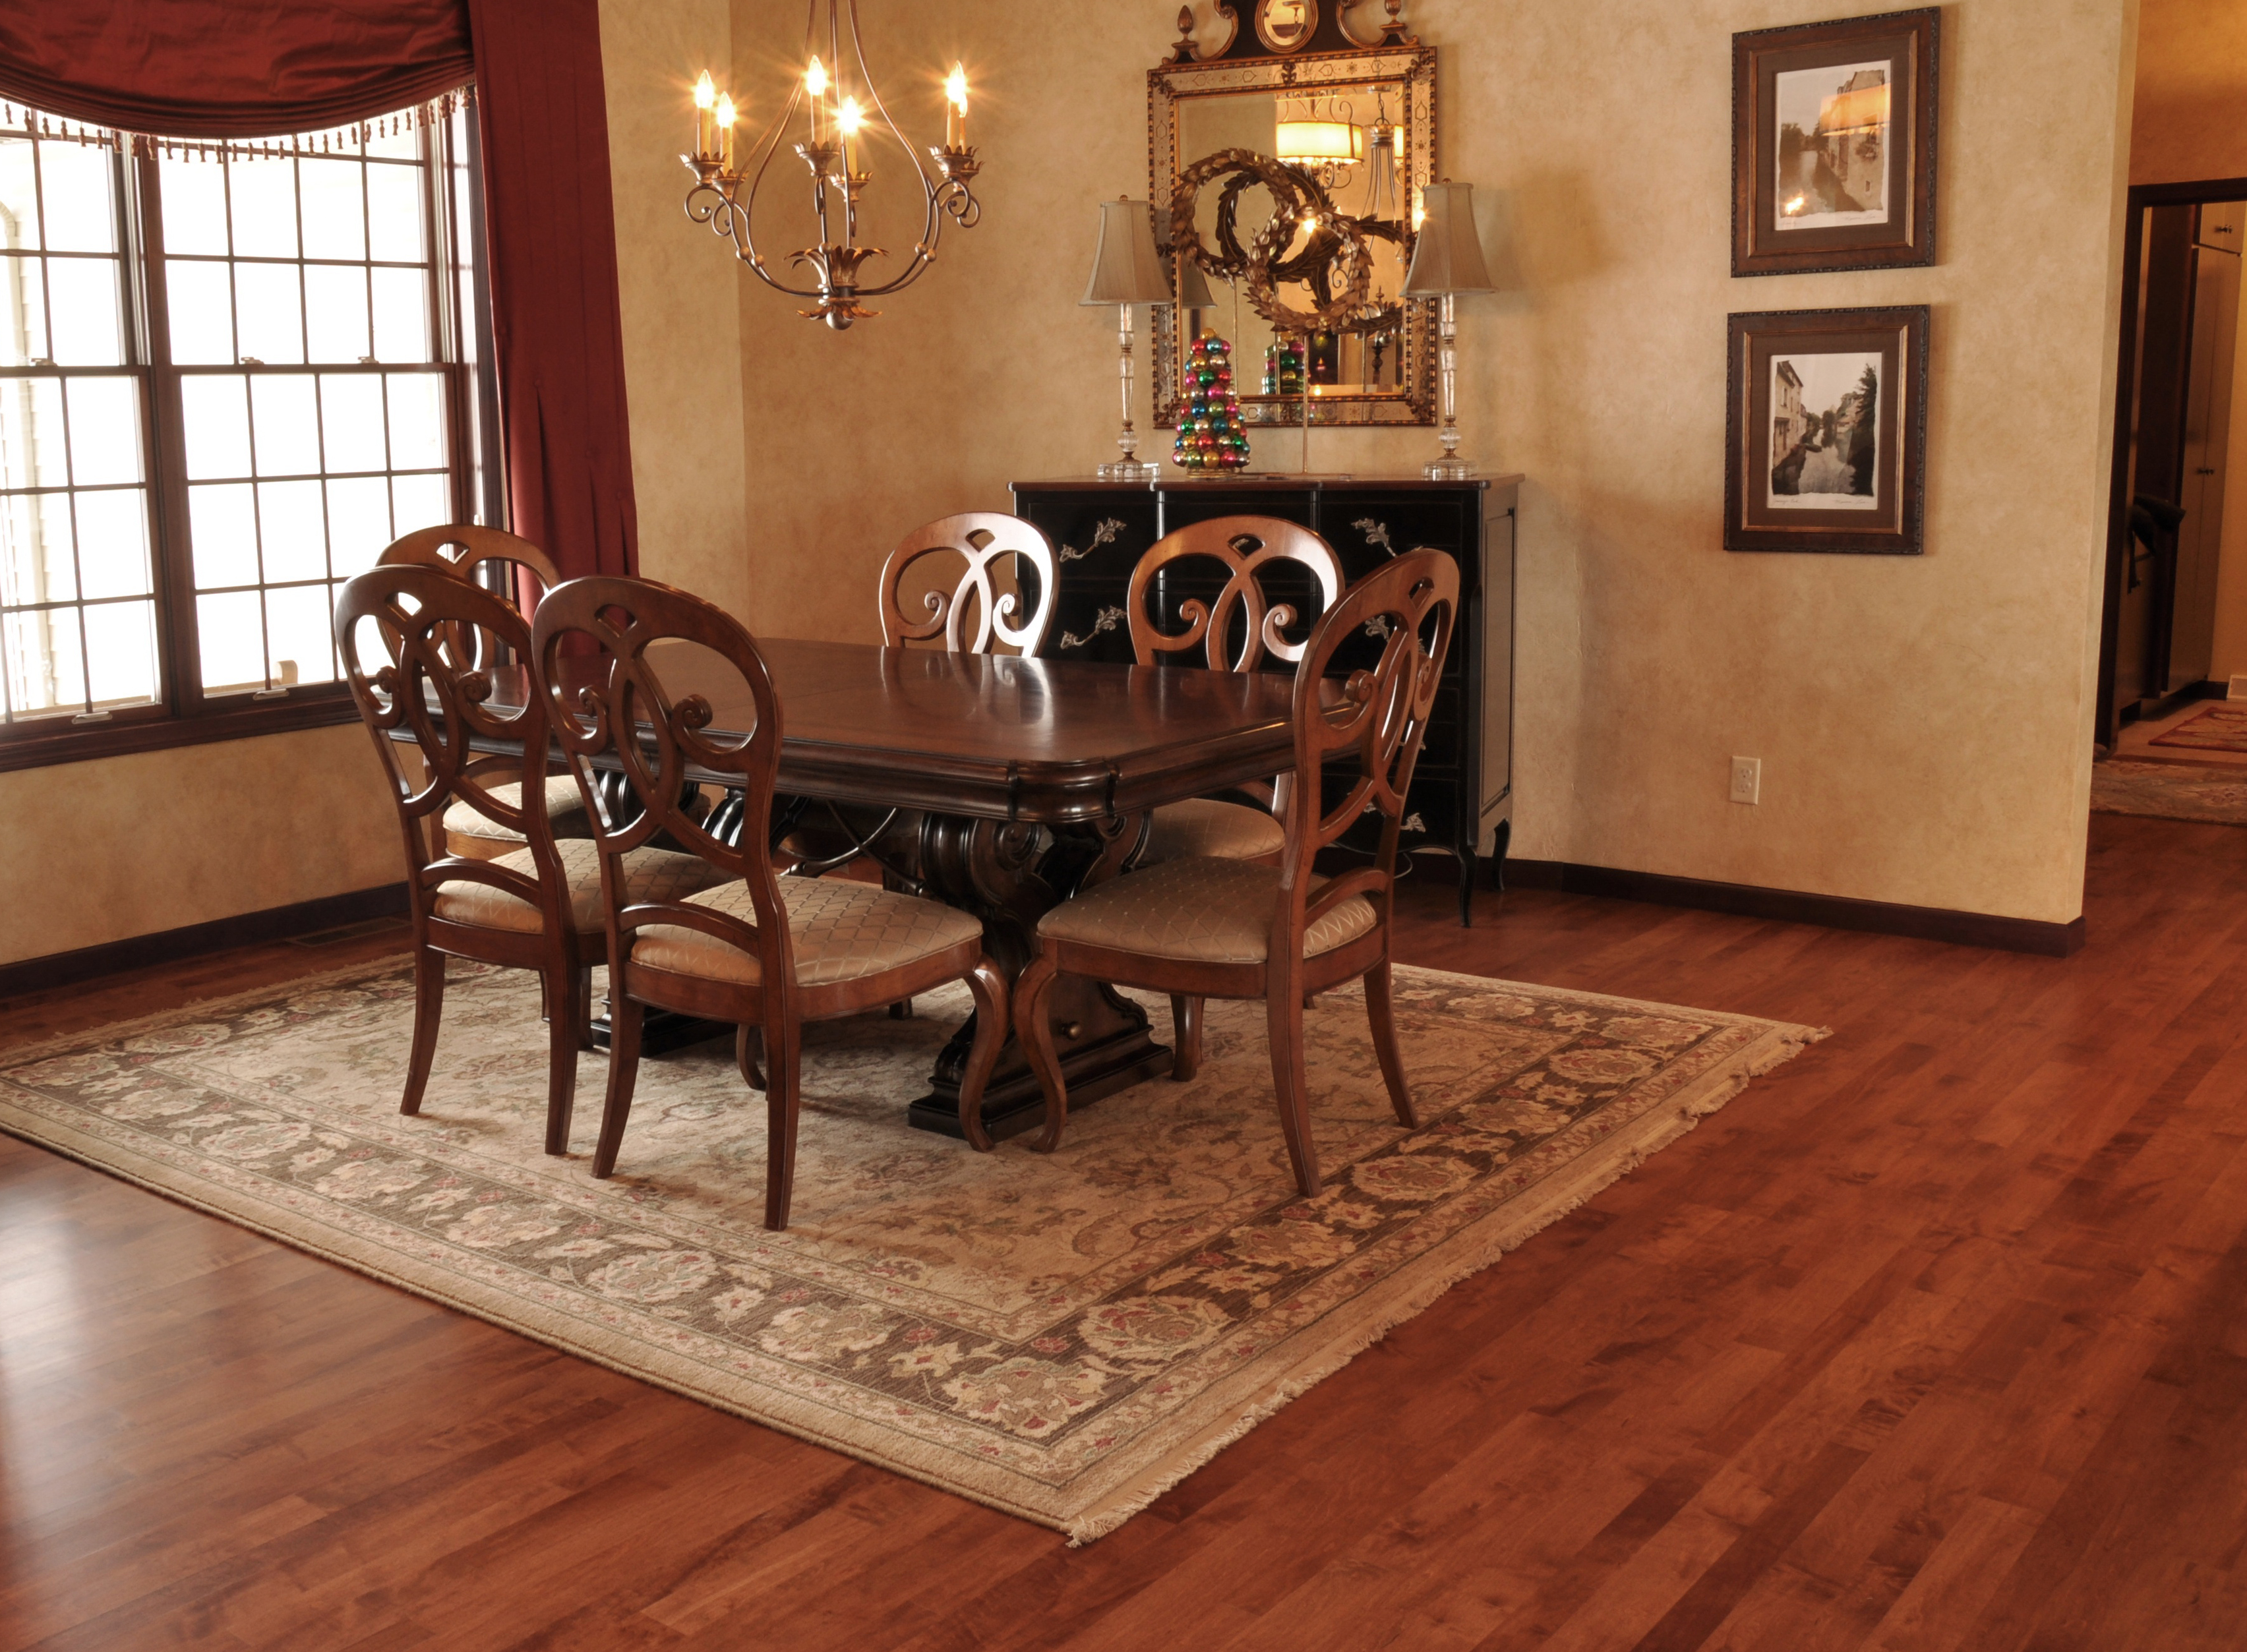 Charmant 5 Tips For Using Rugs On Hardwood Floors